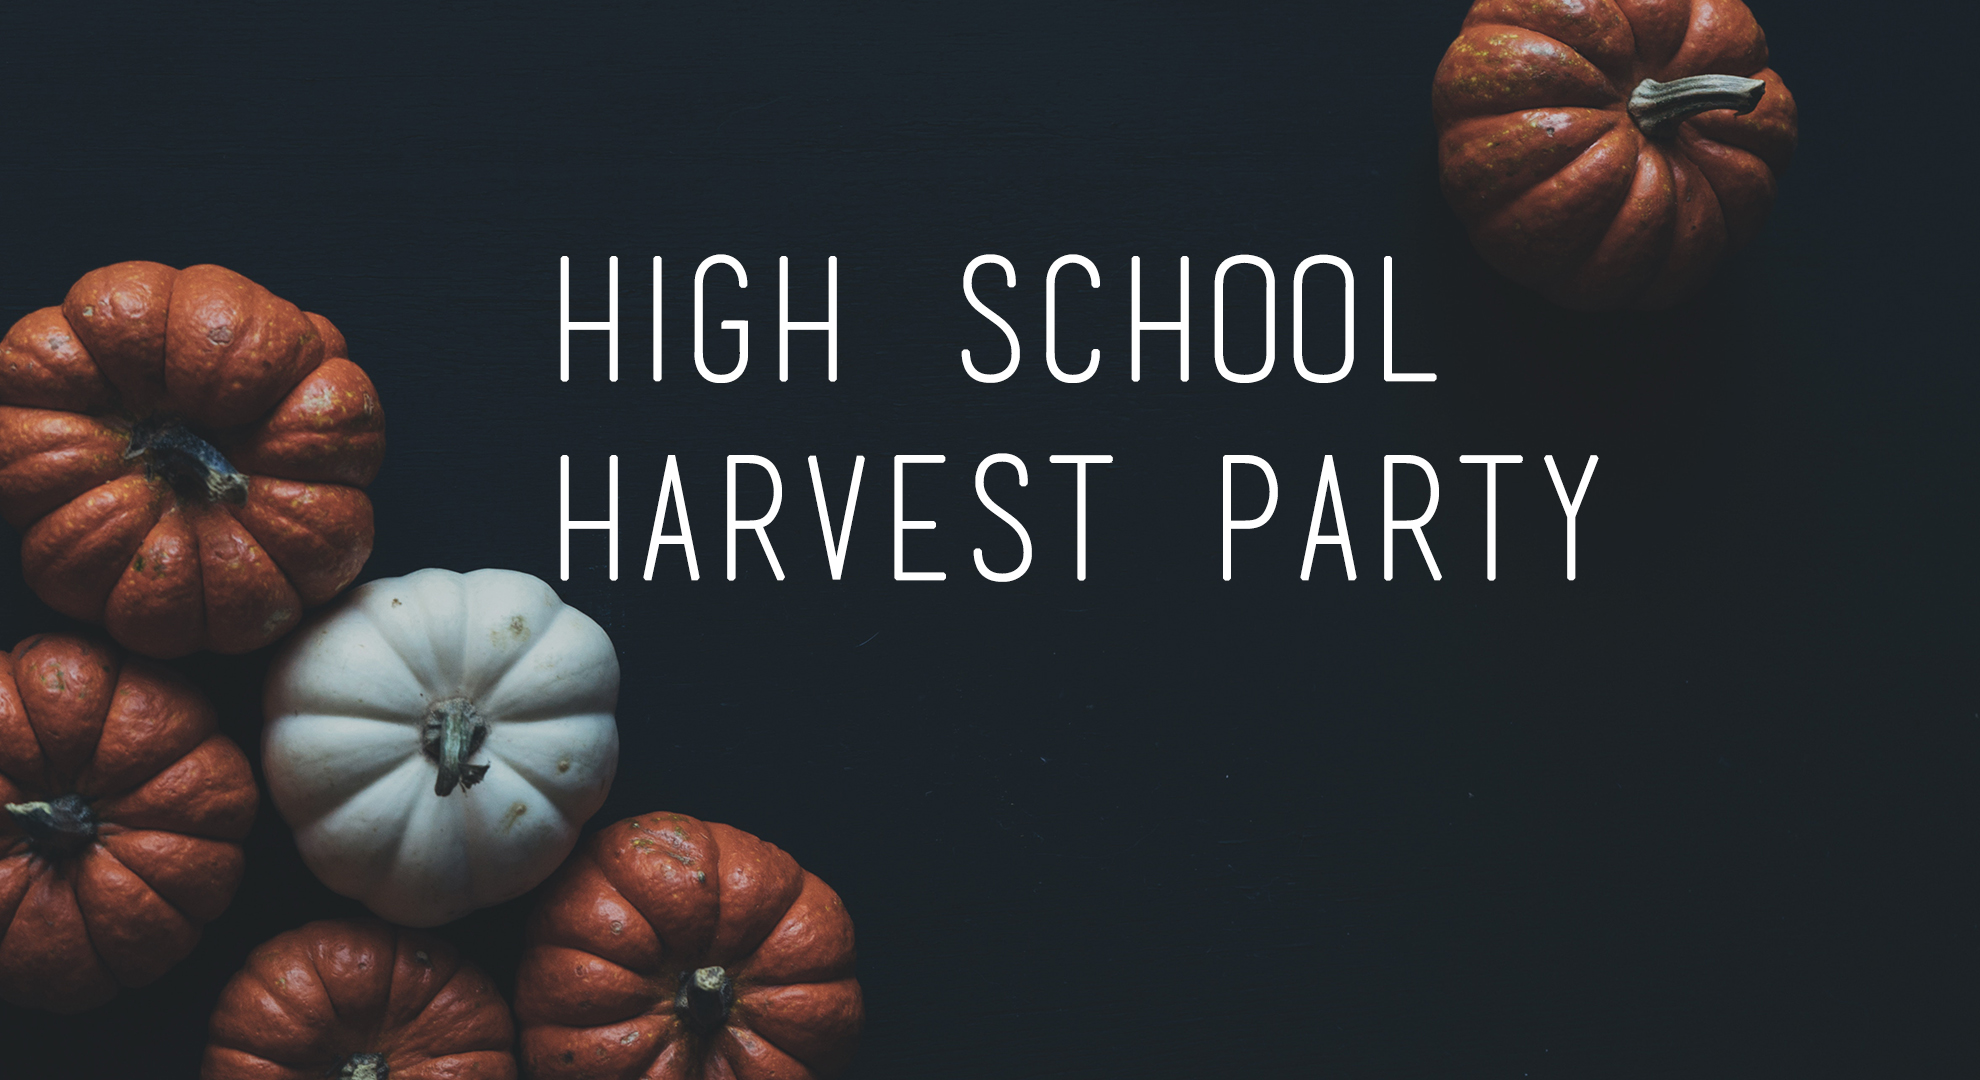 High School Harvest Party 2017web.jpg